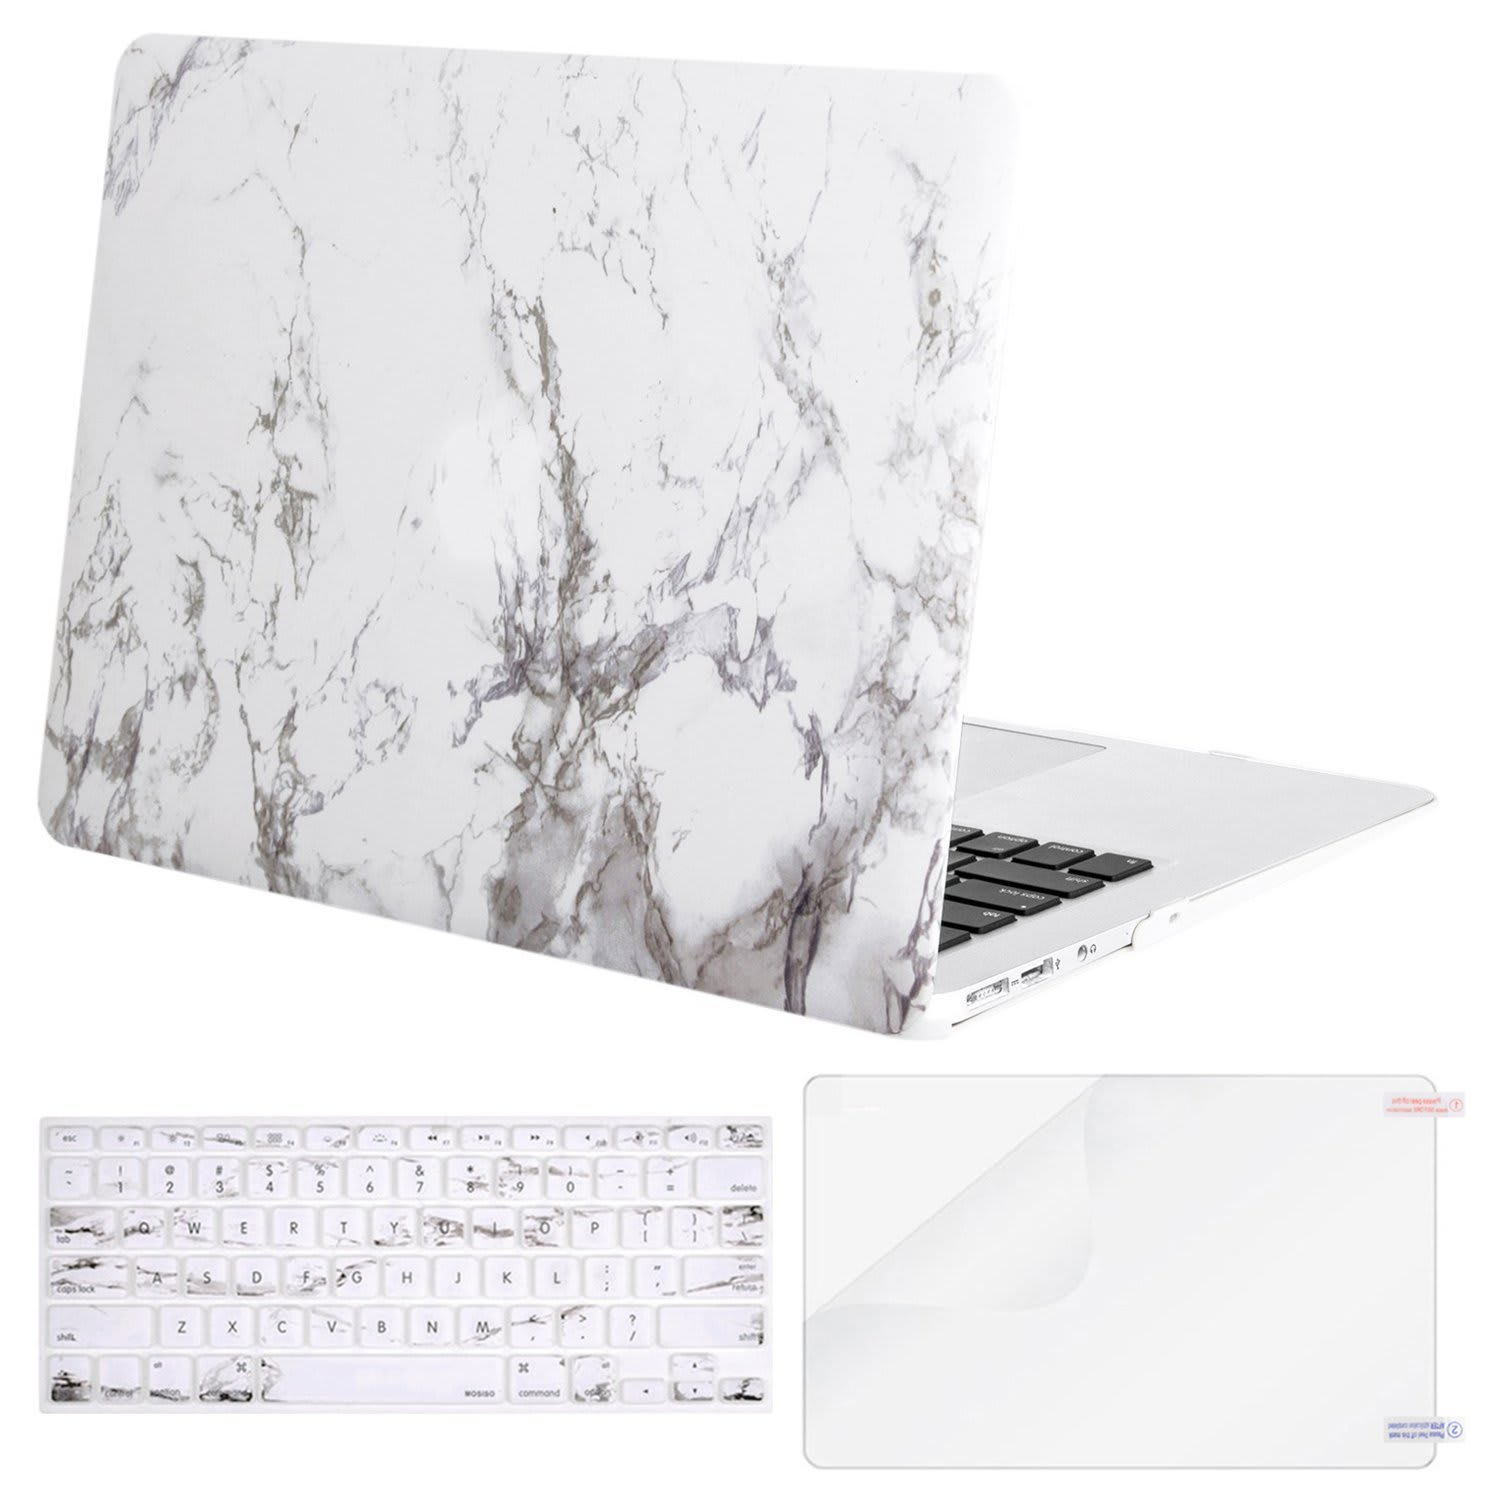 Mosiso Laptop Cases for MacBook Air / Pro: 40% off + free shipping w/ Prime